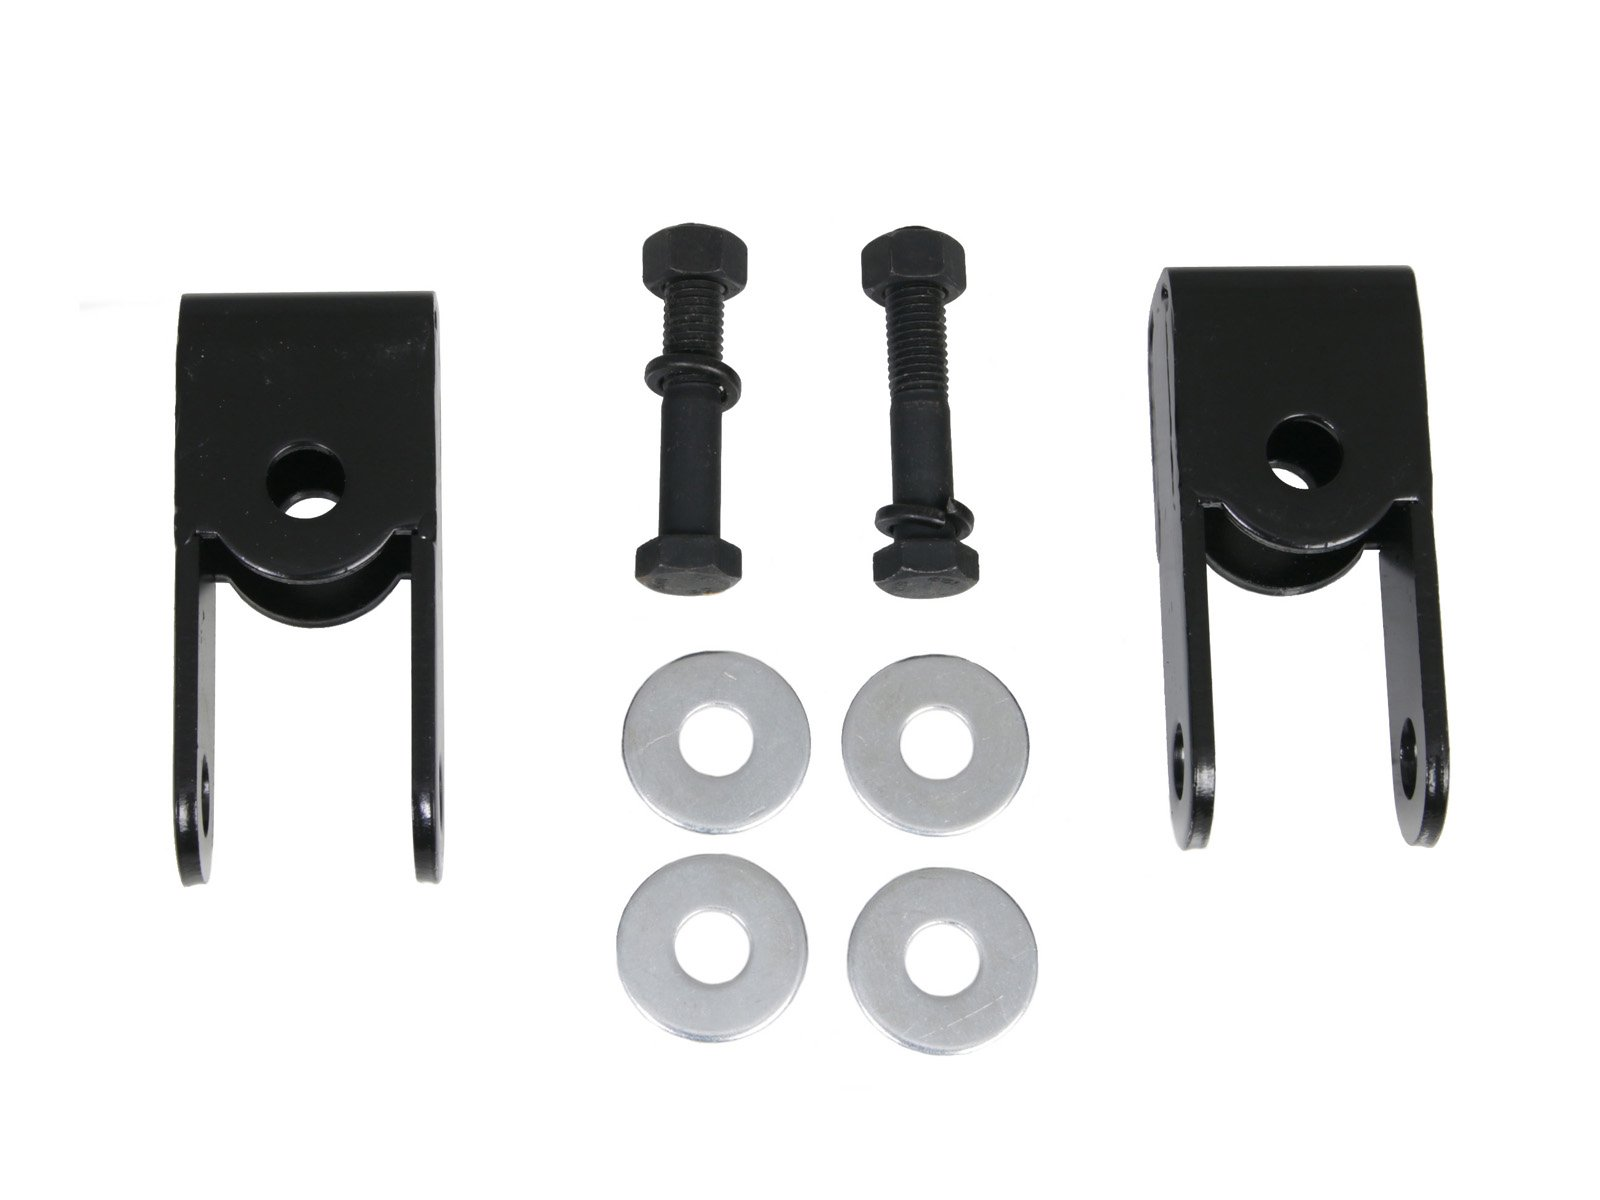 Front Shock Extender Extension for 1-3'' Leveling Lift Kits - Fits 99-06 GMC Chevy Chevrolet Trucks Avalanche Silverado Tahoe Sierra Yukon 4x4 4WD 4x2 (See Description for exact year/model)